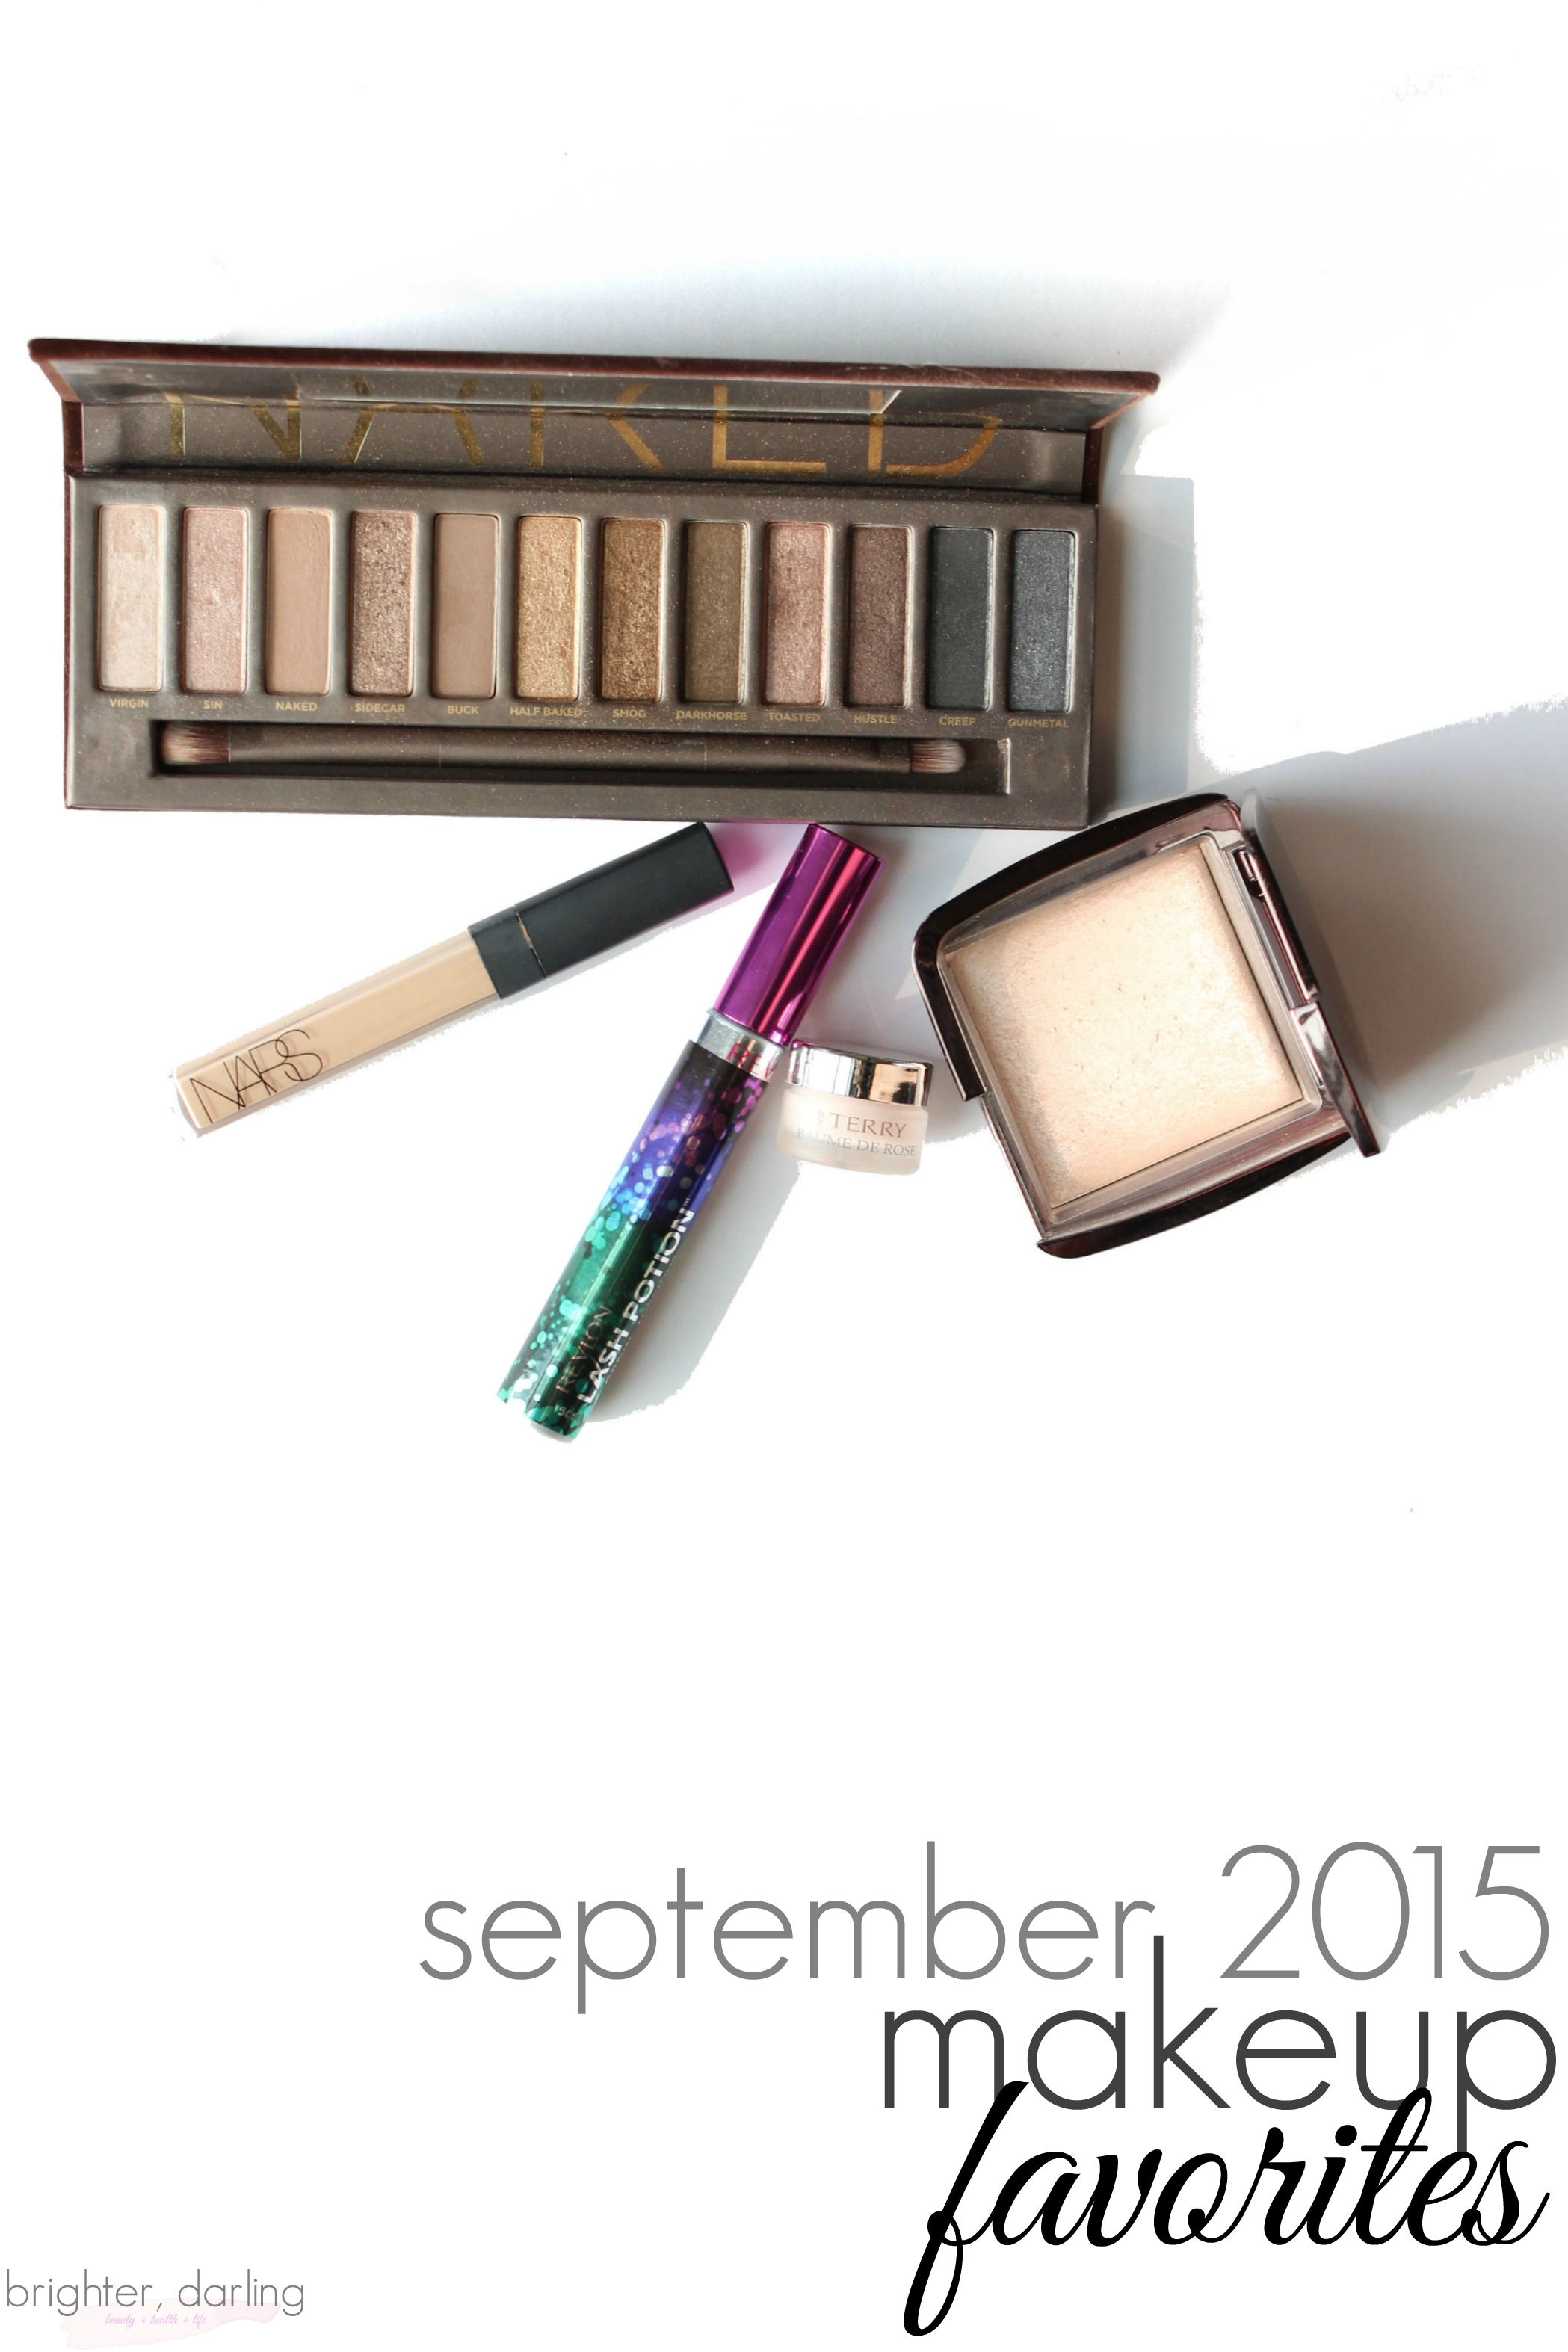 September 2015 Makeup Beauty Favorites Urban Decay Naked NARS Radiant Custard Revlon Lash Potion byTerry Hourglass Luminous Light